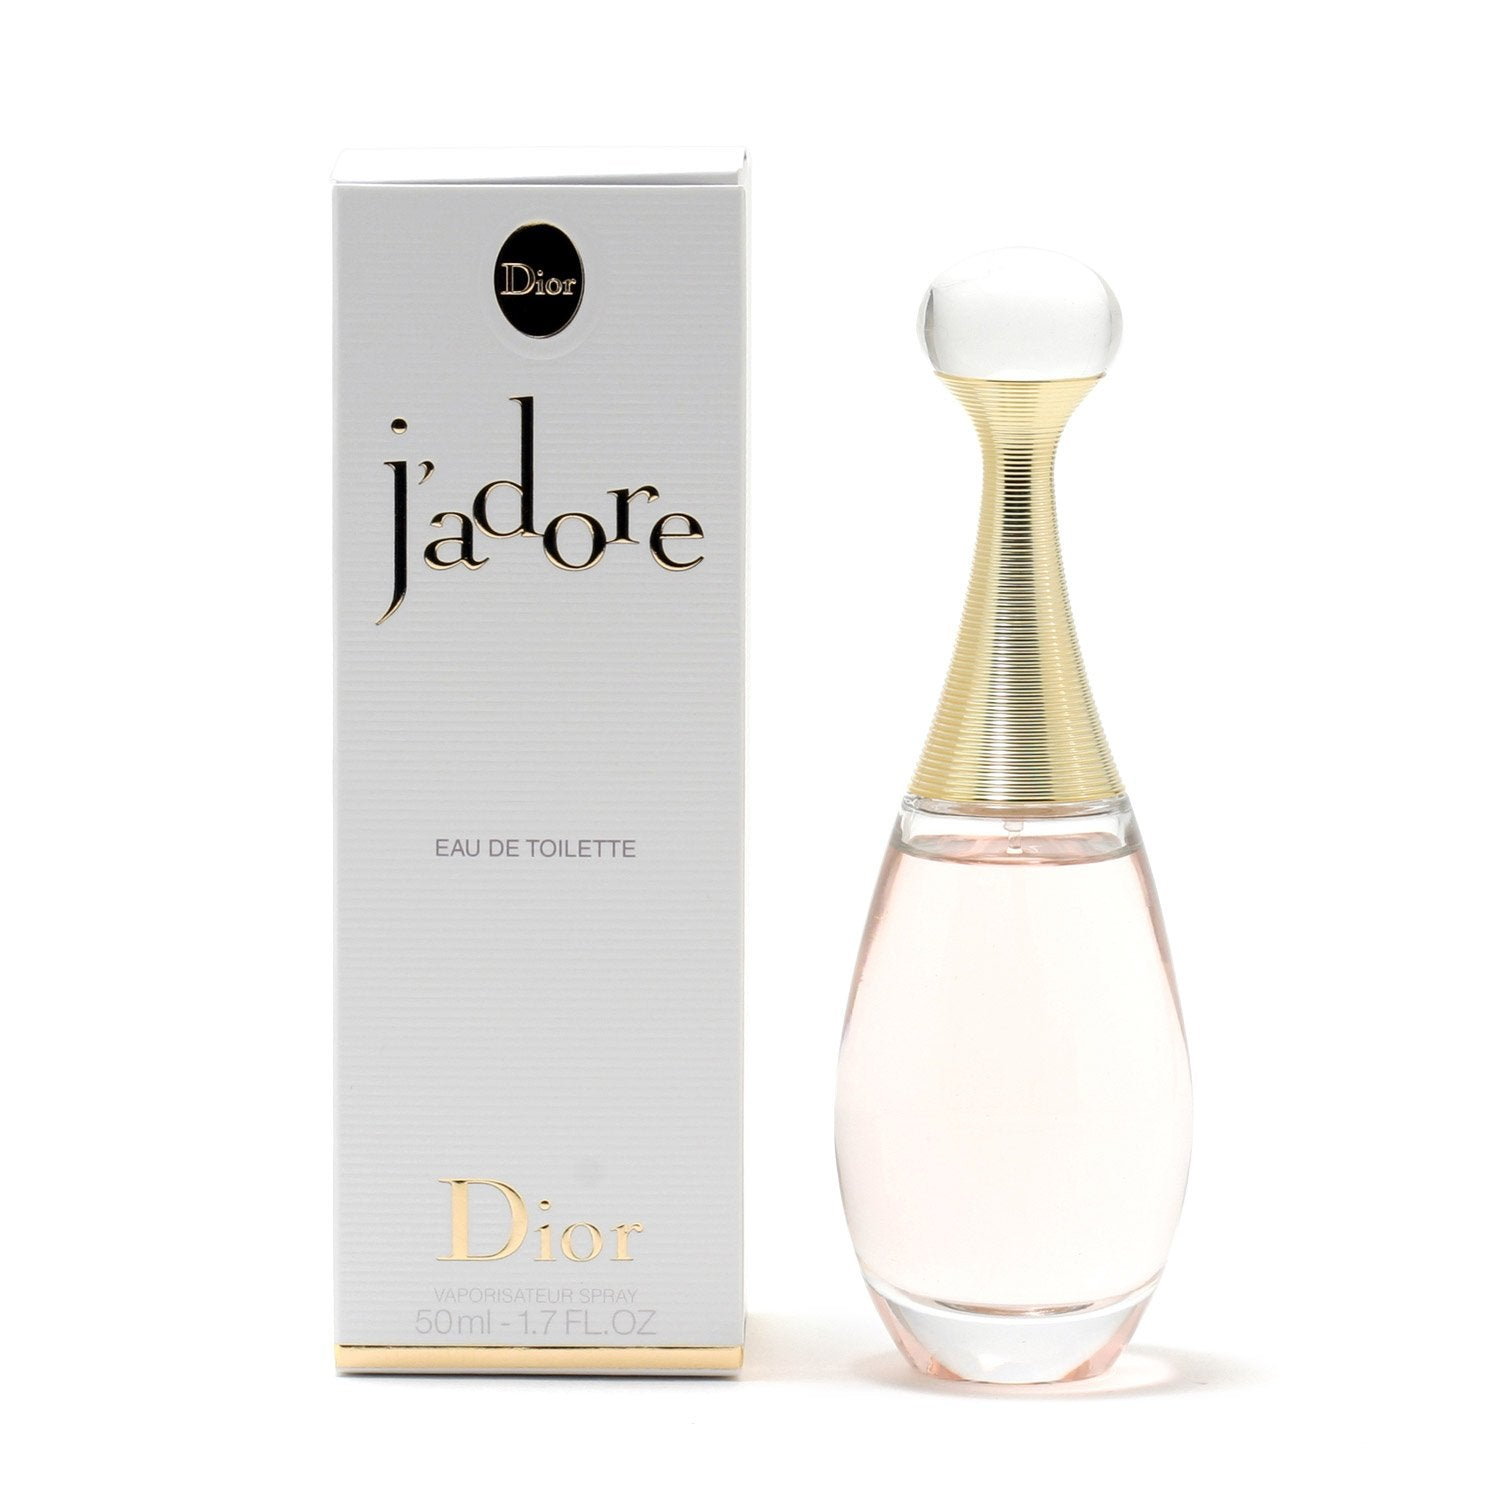 Perfume - J'ADORE FOR WOMEN BY CHRISTIAN DIOR - EAU DE TOILETTE SPRAY